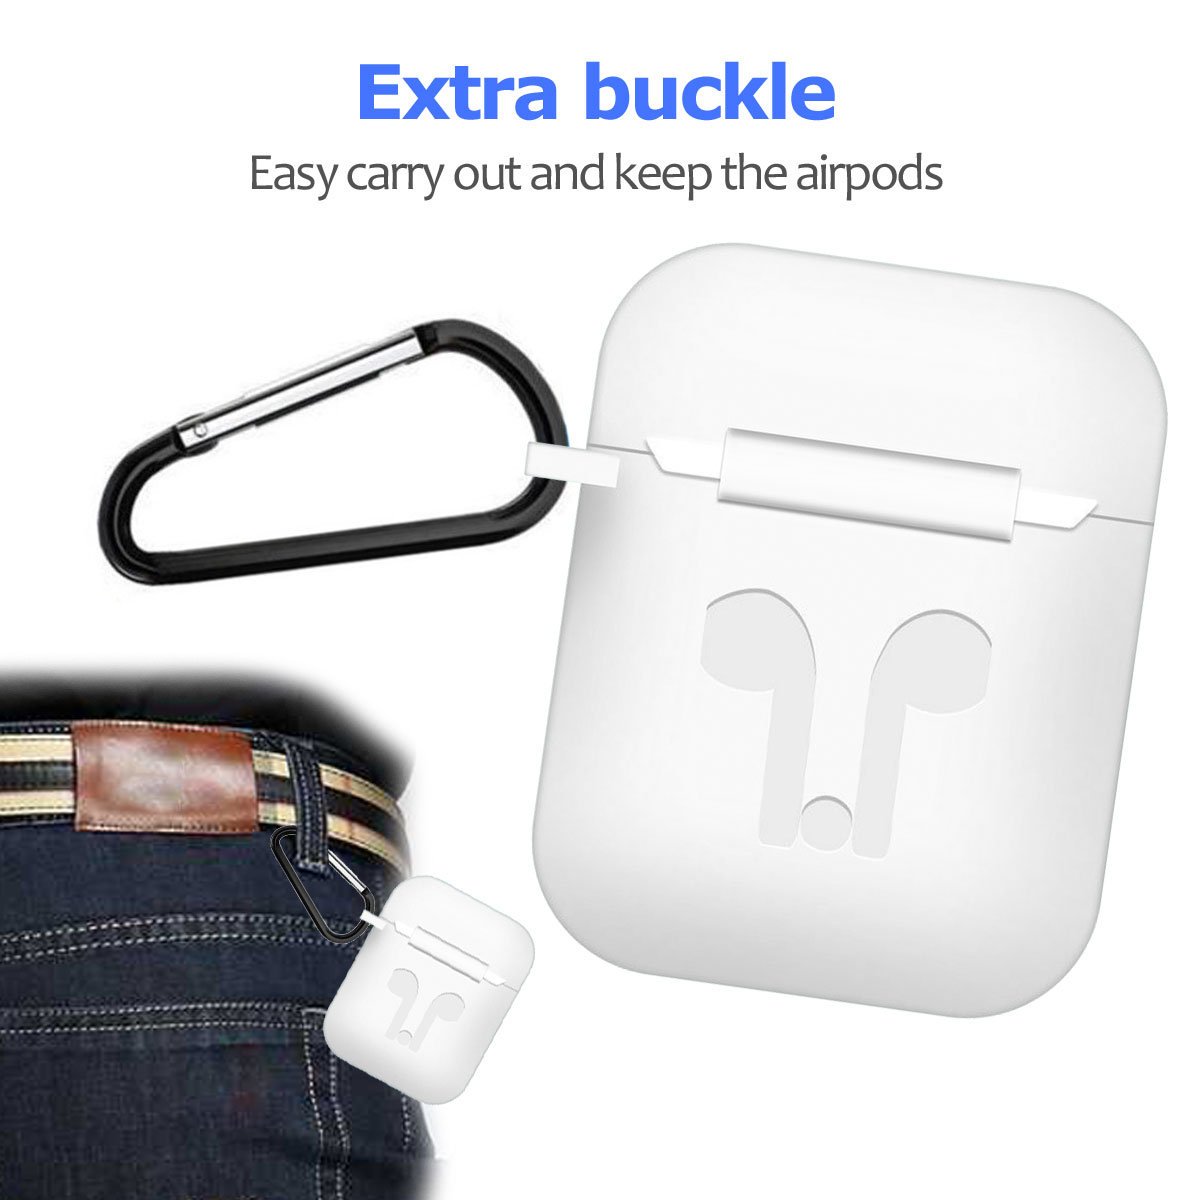 Silicone-Ruggged-Case-Cover-Earbuds-For-Apple-AirPods-2nd-Gen-Accessories-2019 thumbnail 22